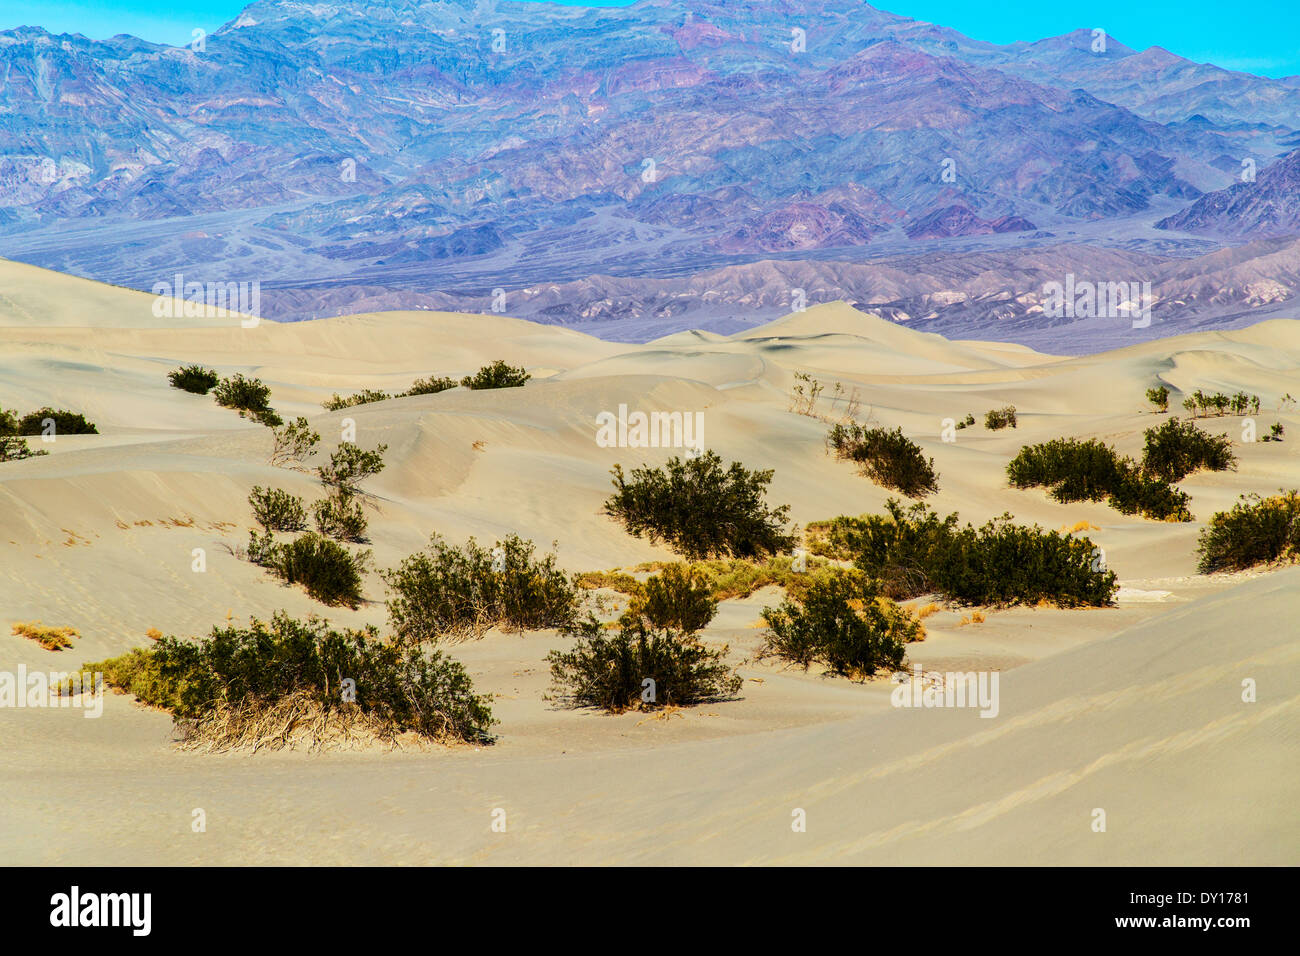 Death Valley National Park California United States of America. Mesquite Flat sand dunes - Stock Image